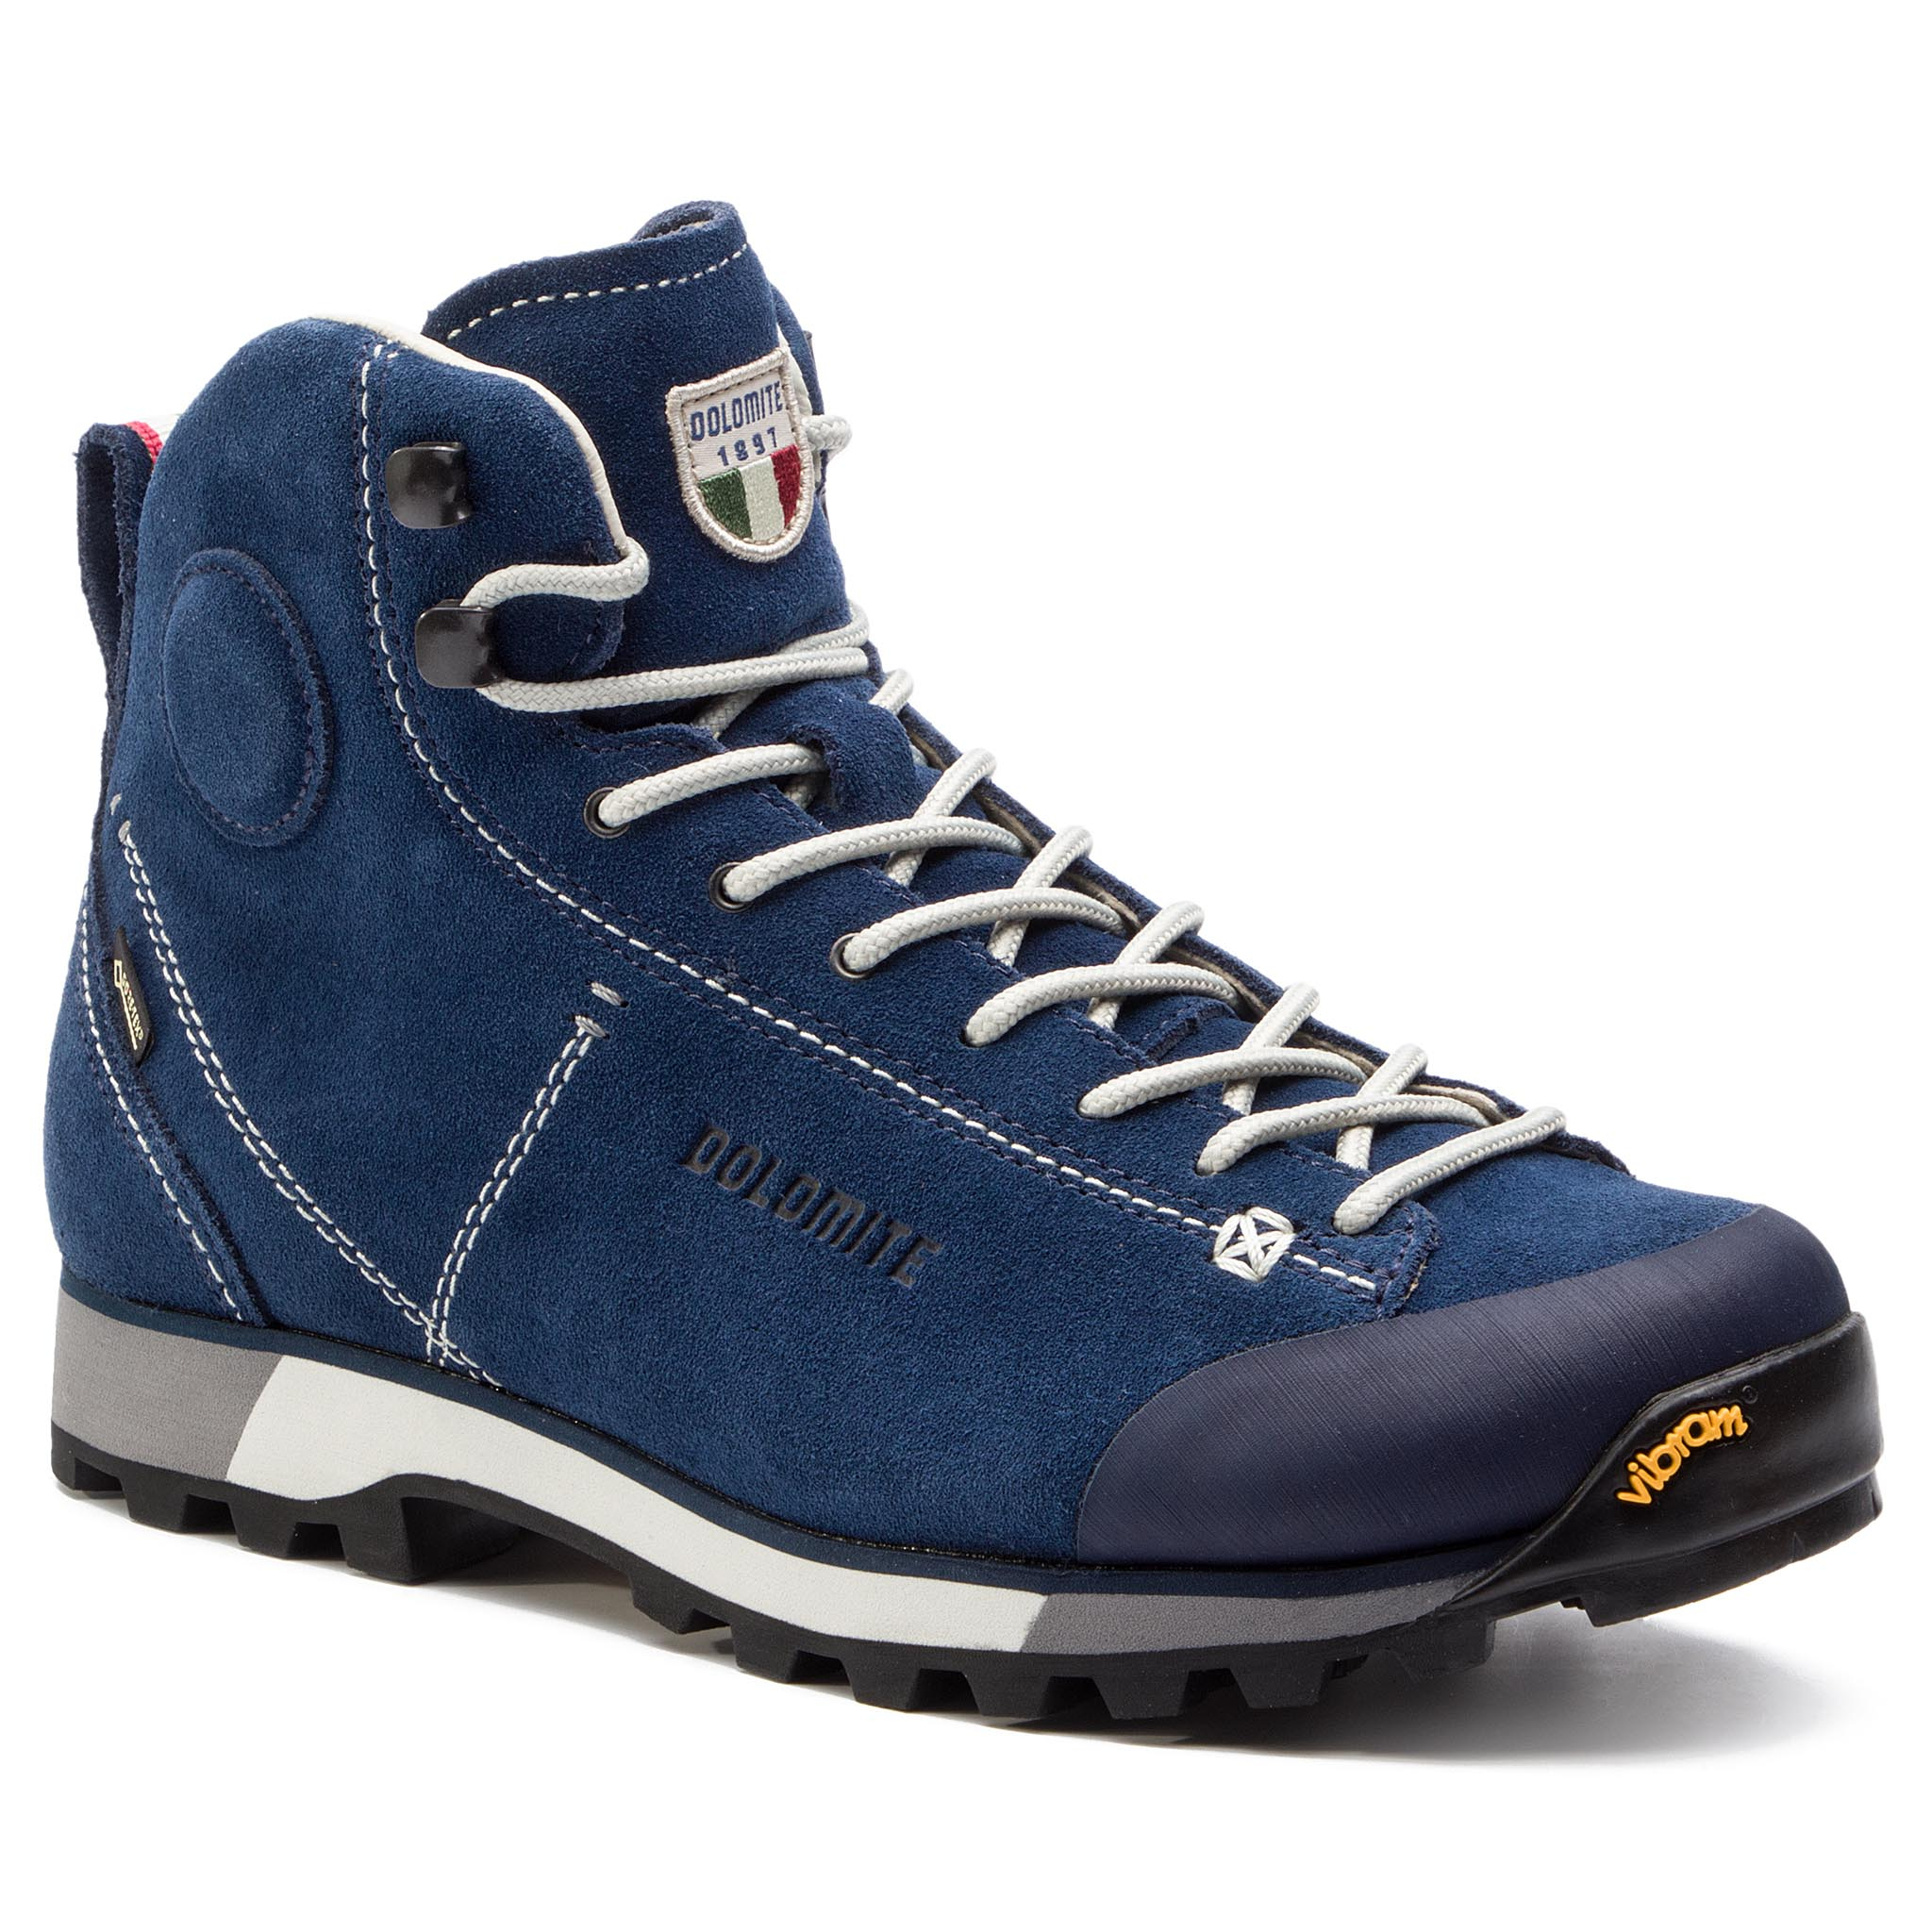 Trekkings Dolomite - Cinquantaquattro Hike Gtx Gore-Tex 269482-0158011 Blue imagine epantofi.ro 2021